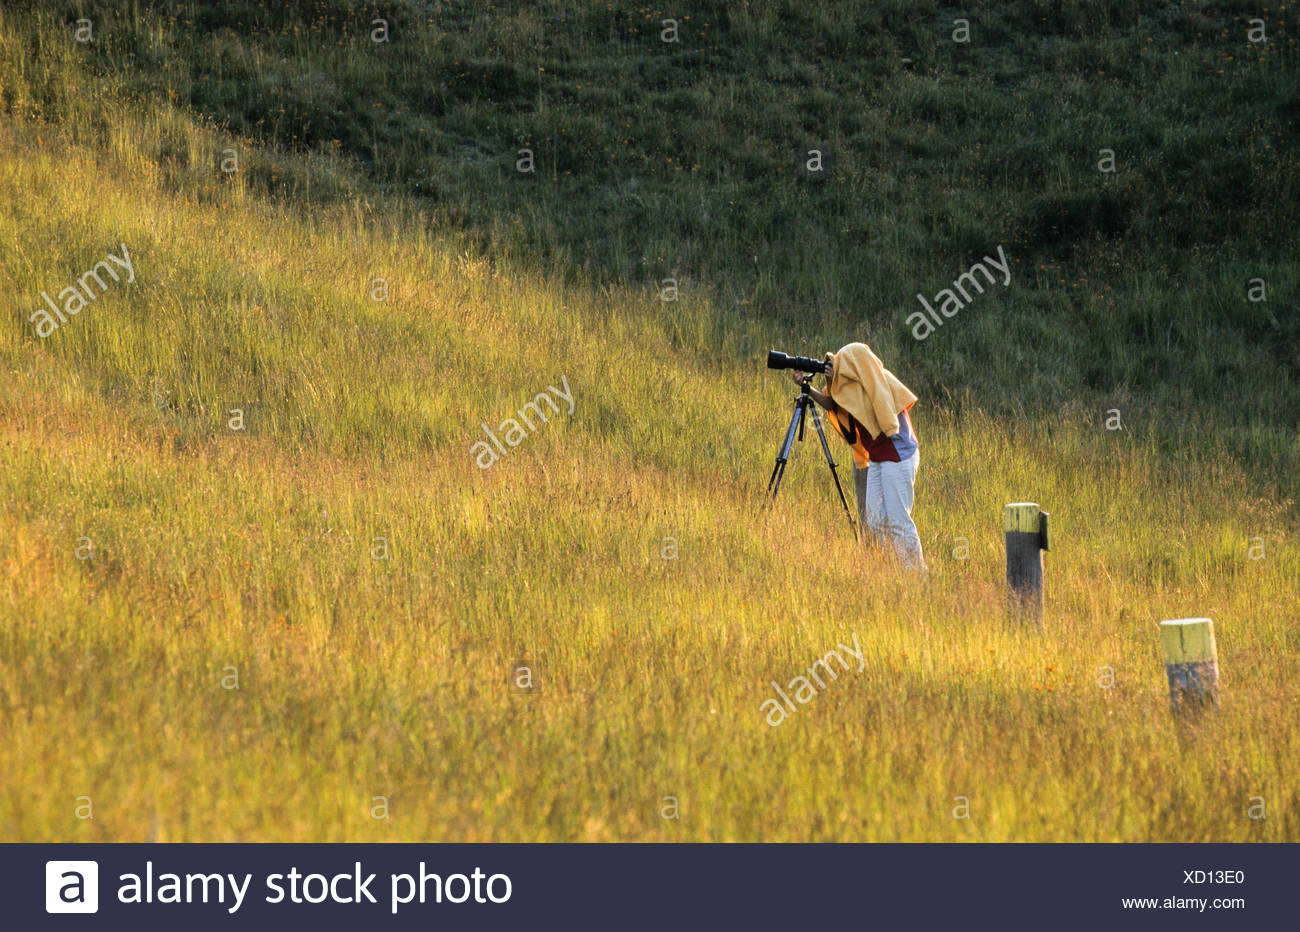 Photographer with tripod aiming telephoto lens, head and camera covered to block out light - Stock Image